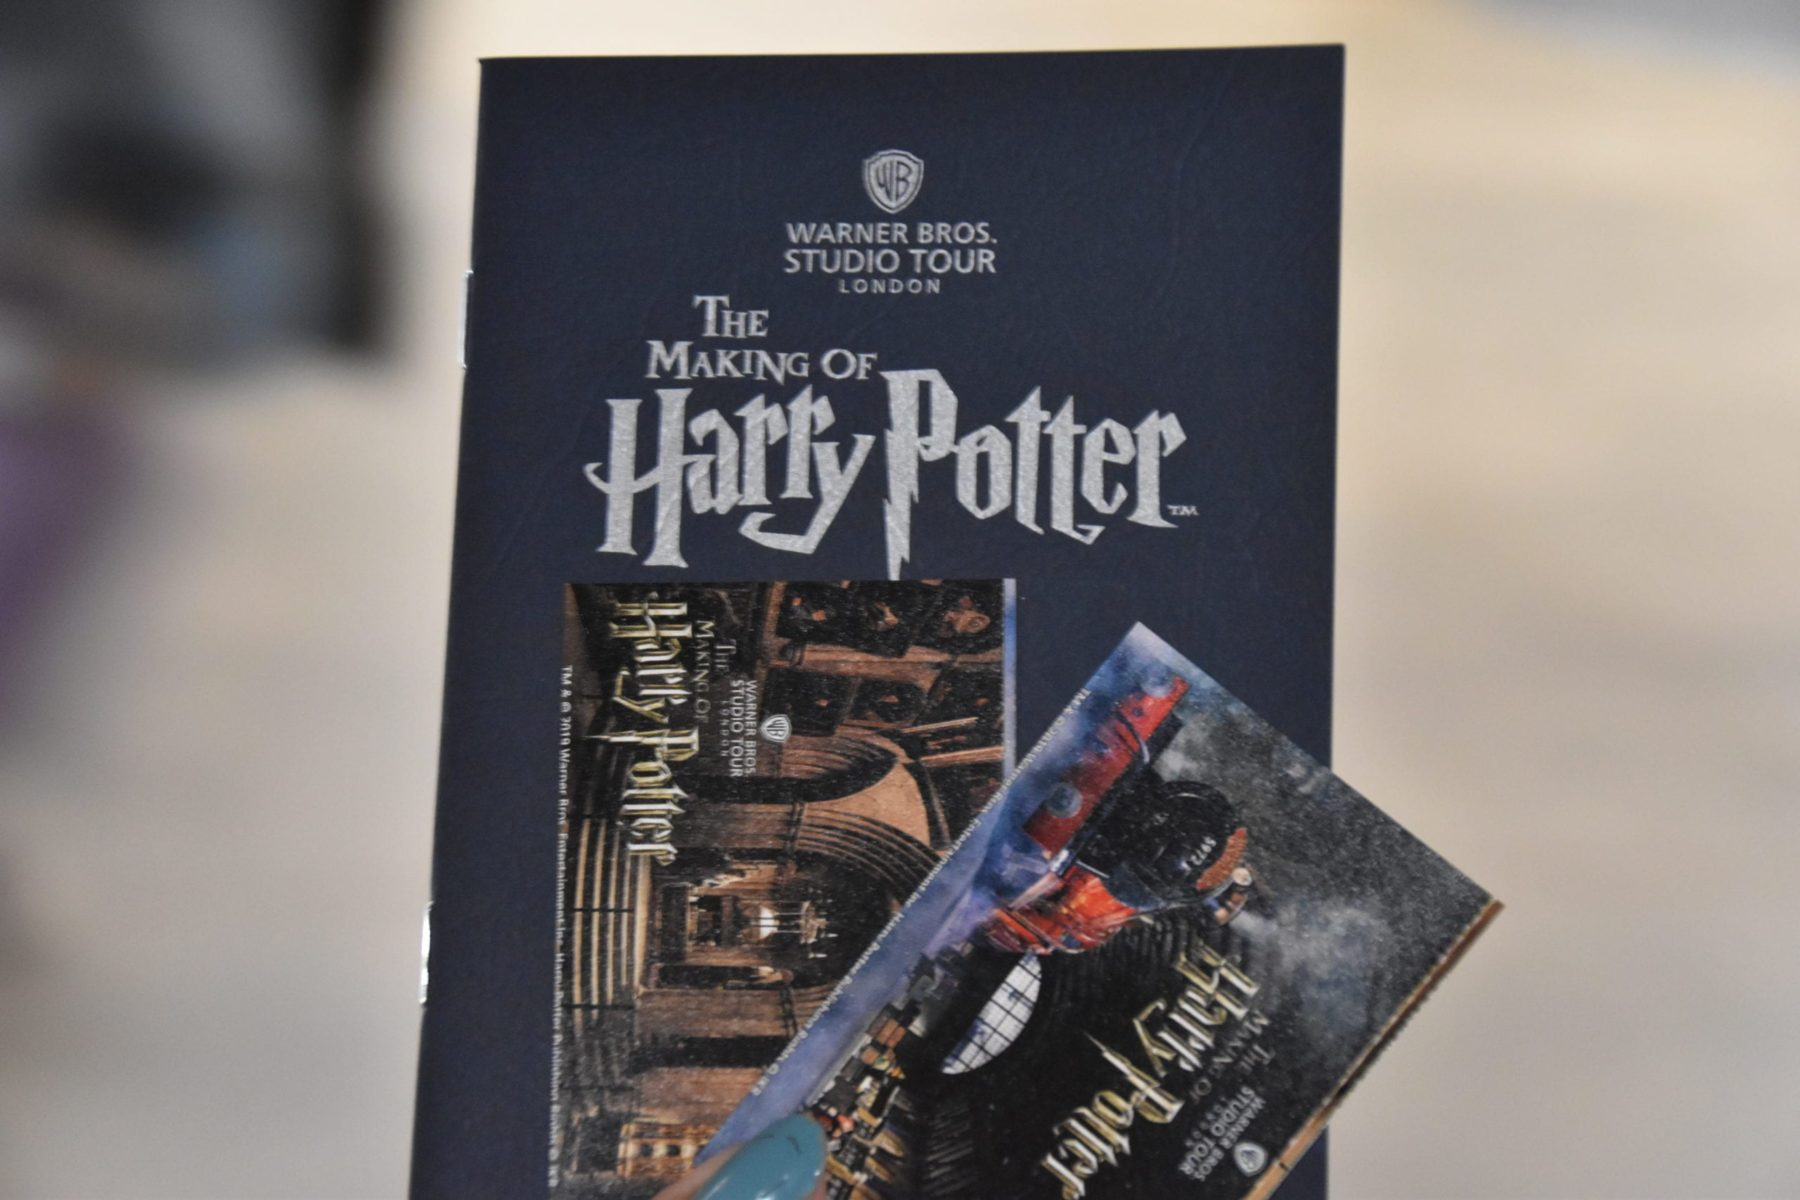 Tickets to Harry Potter Studios London